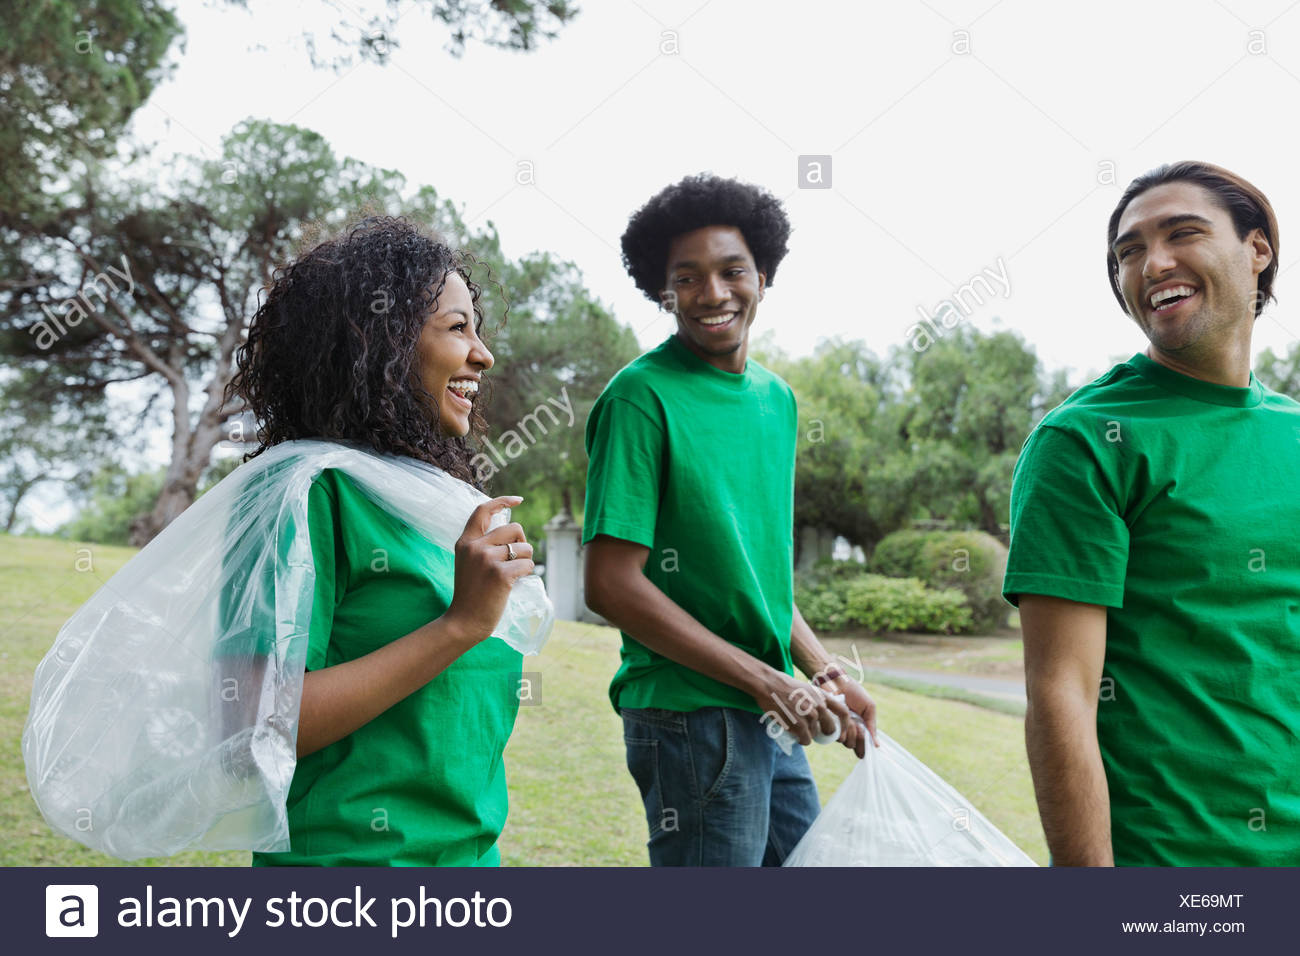 Happy environmentalists with plastic bags in park - Stock Image